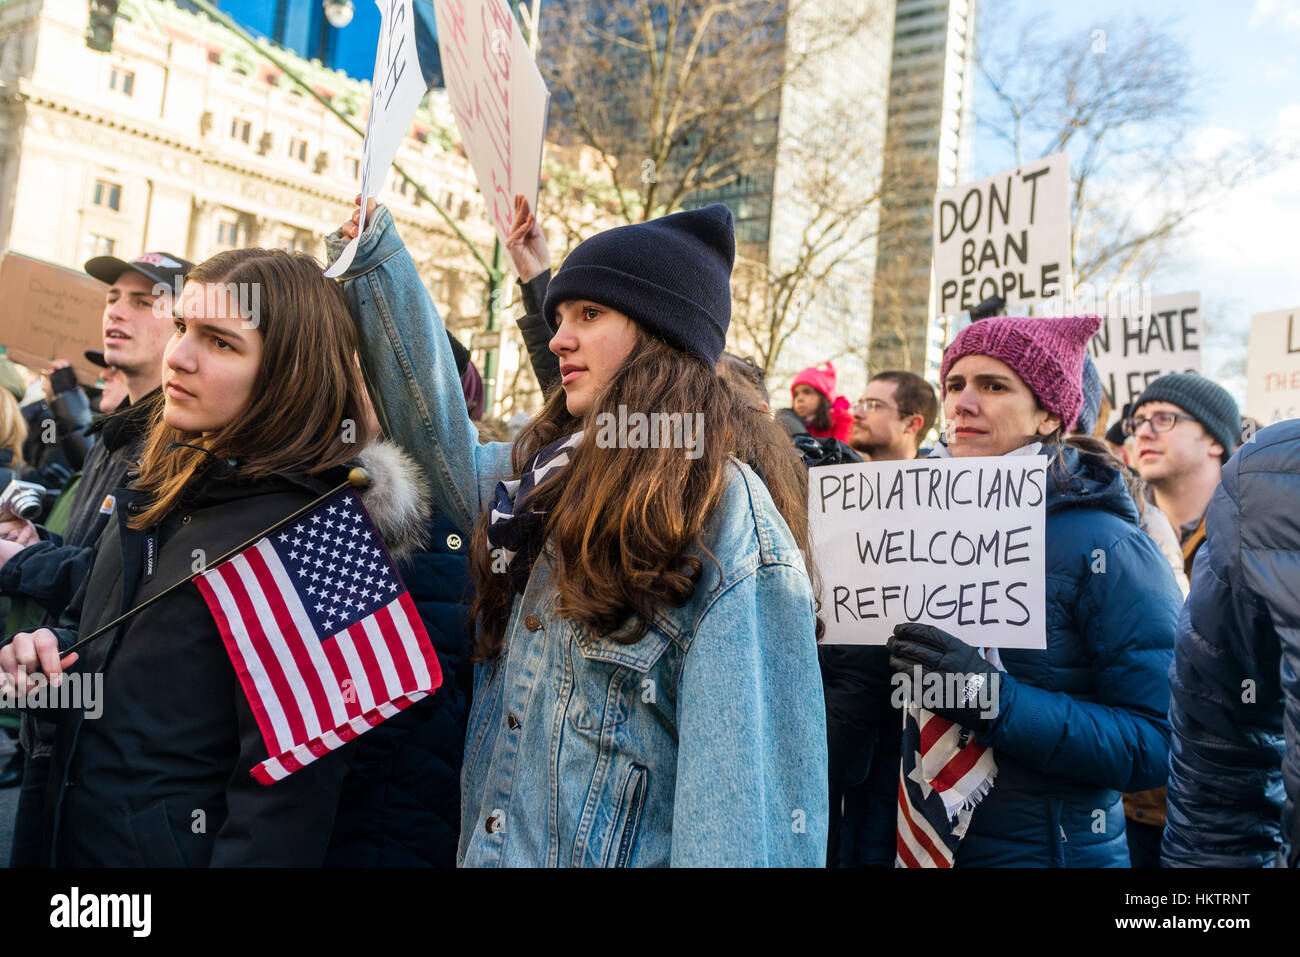 New York City, USA. 29th Jan, 2017. March & Rally: We Will End the Refugee & Muslim Ban. Thousands of New Yorkers Stock Photo